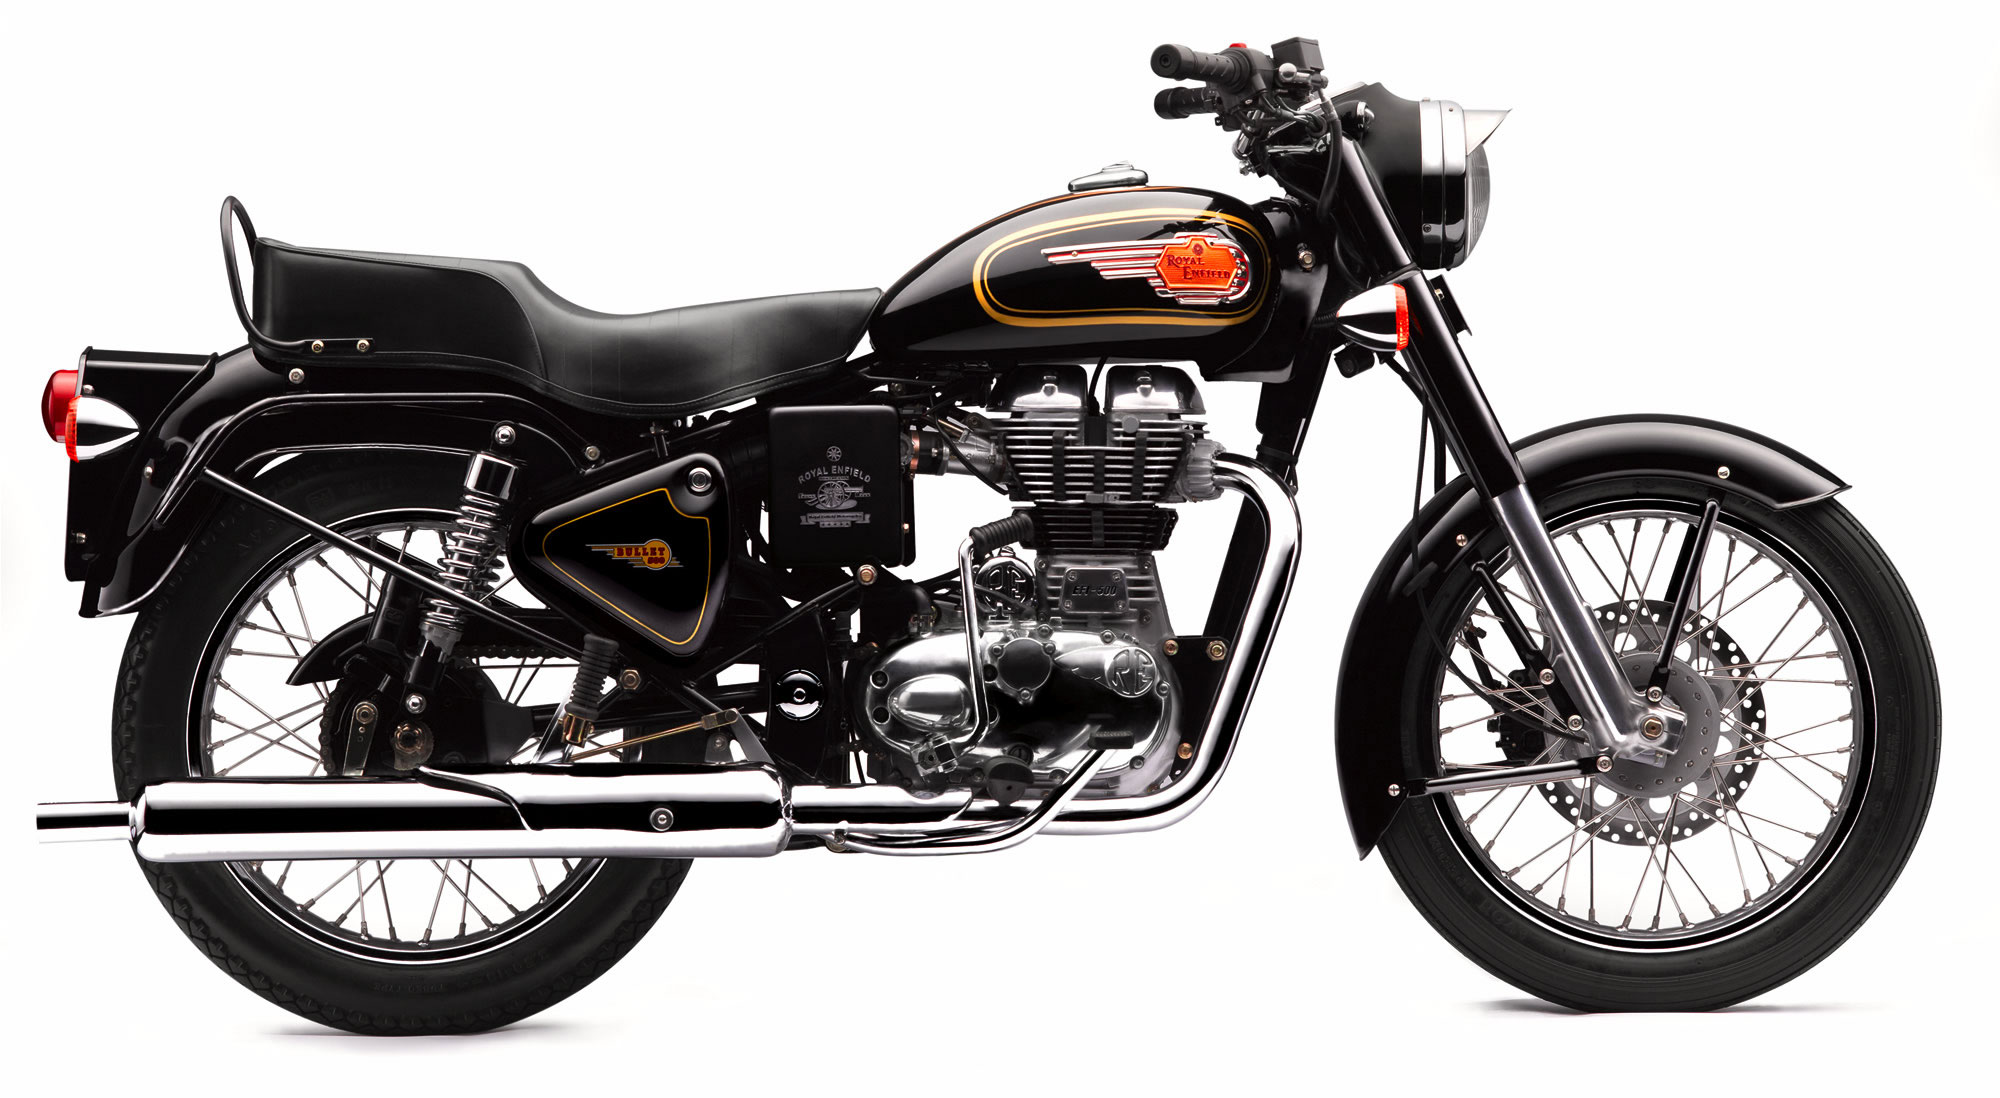 Royal Enfield Bullet 500 Trial Trail 2001 images #122970